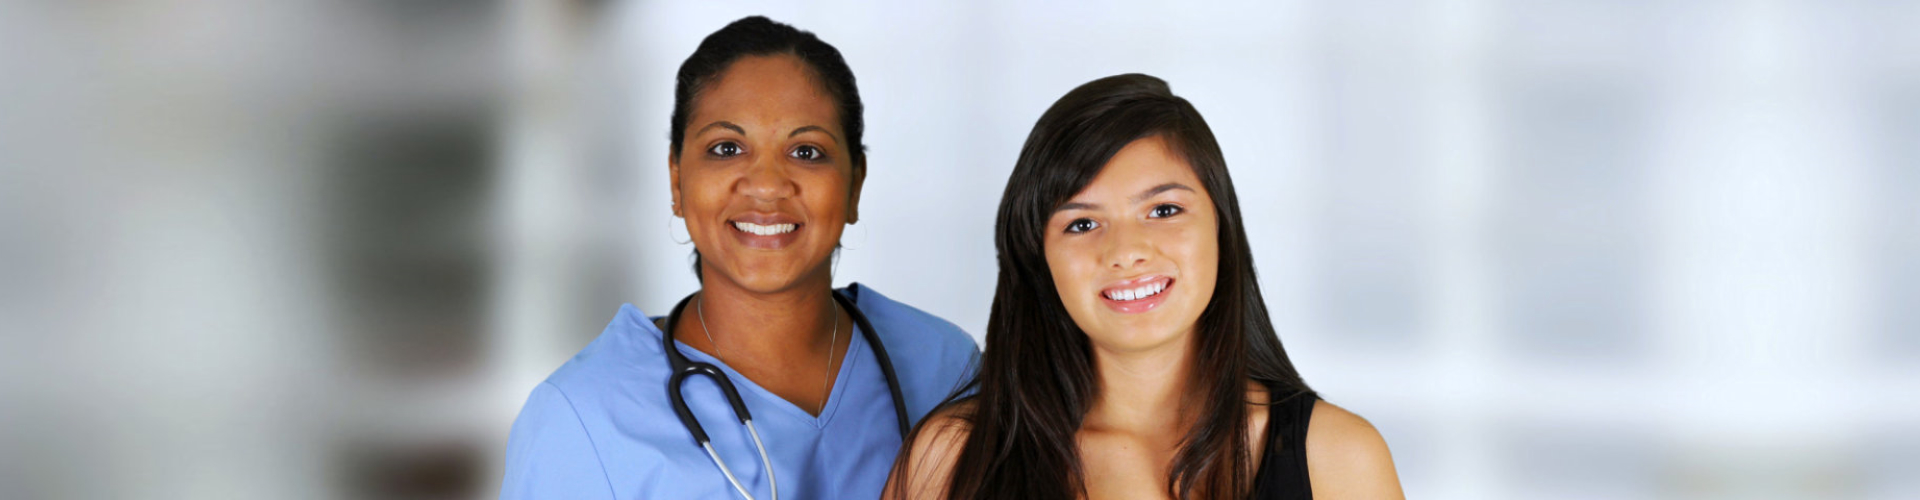 nurse and young lady smiling